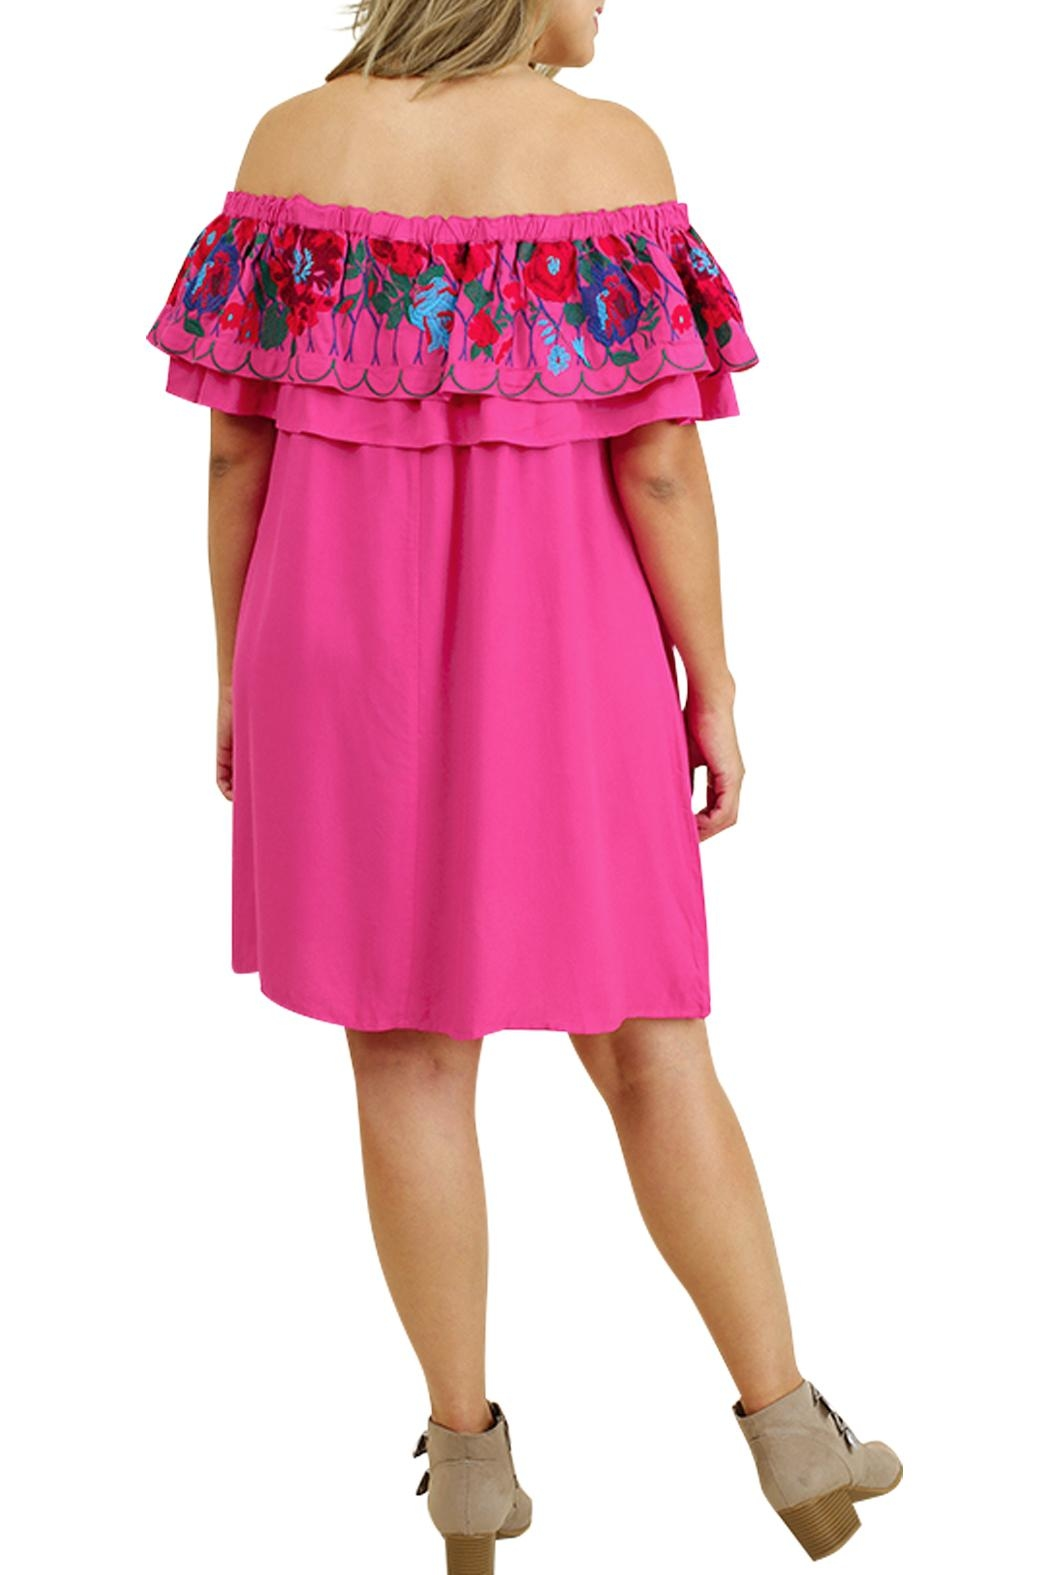 Umgee USA Floral Party Dress - Side Cropped Image